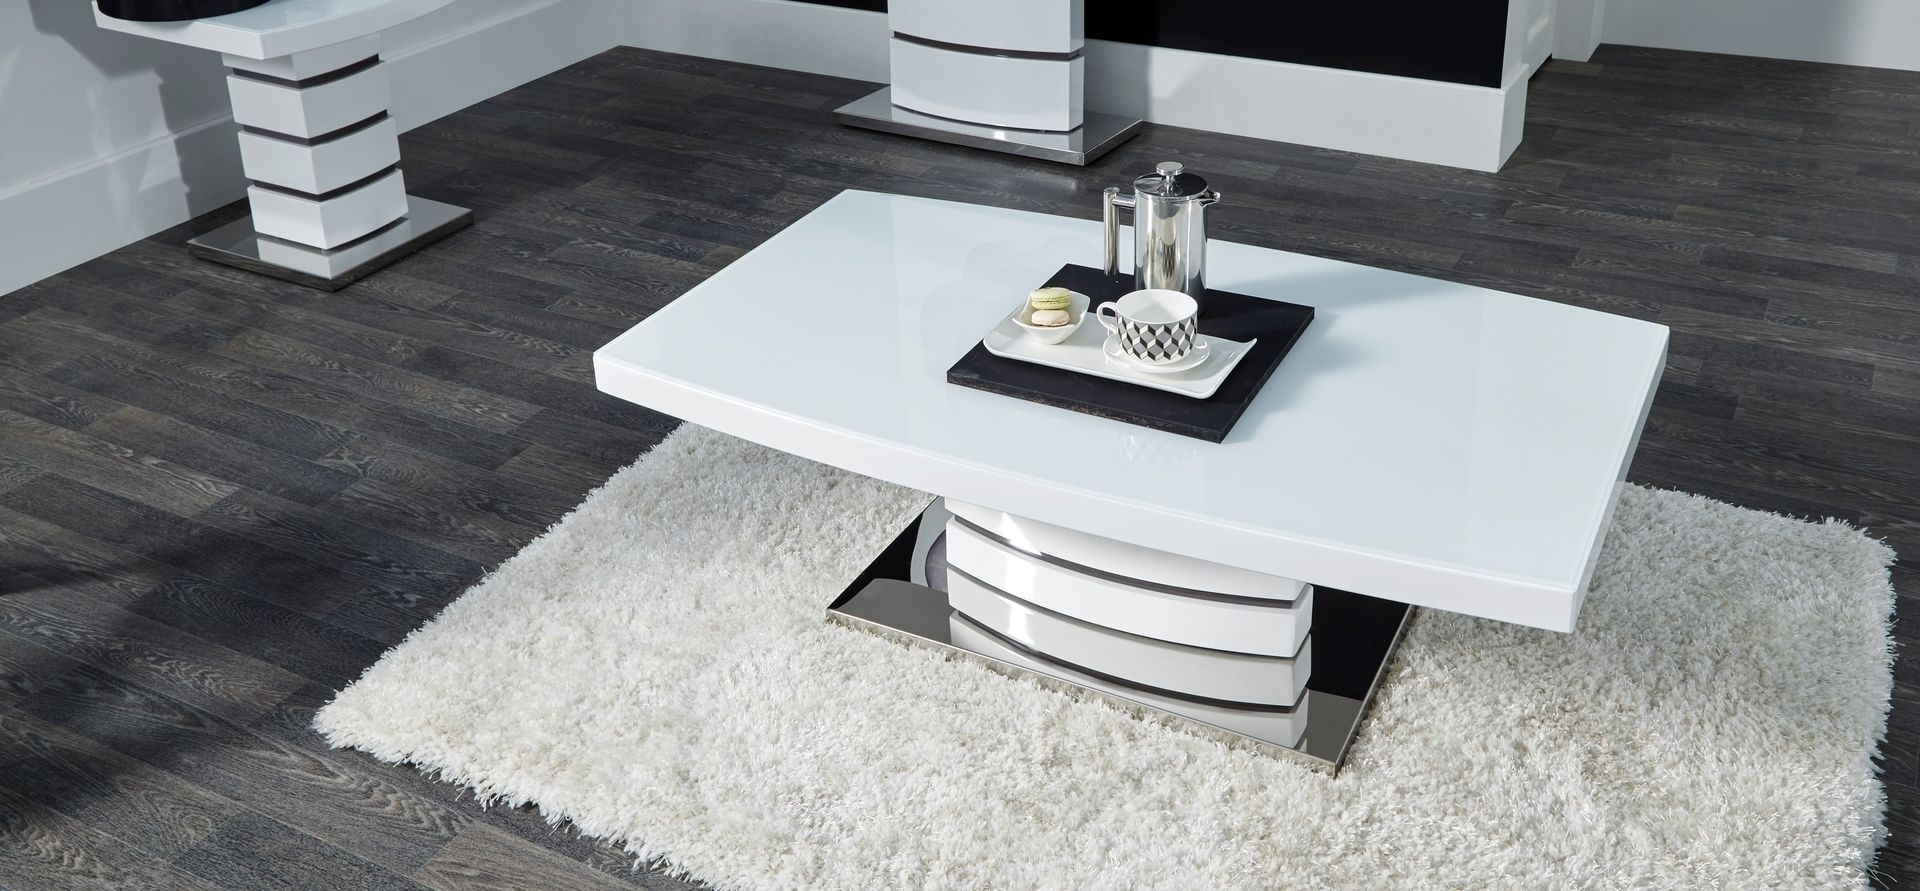 New Soho White Coffee Table – Scs With 2017 Scs Dining Tables (Gallery 13 of 25)